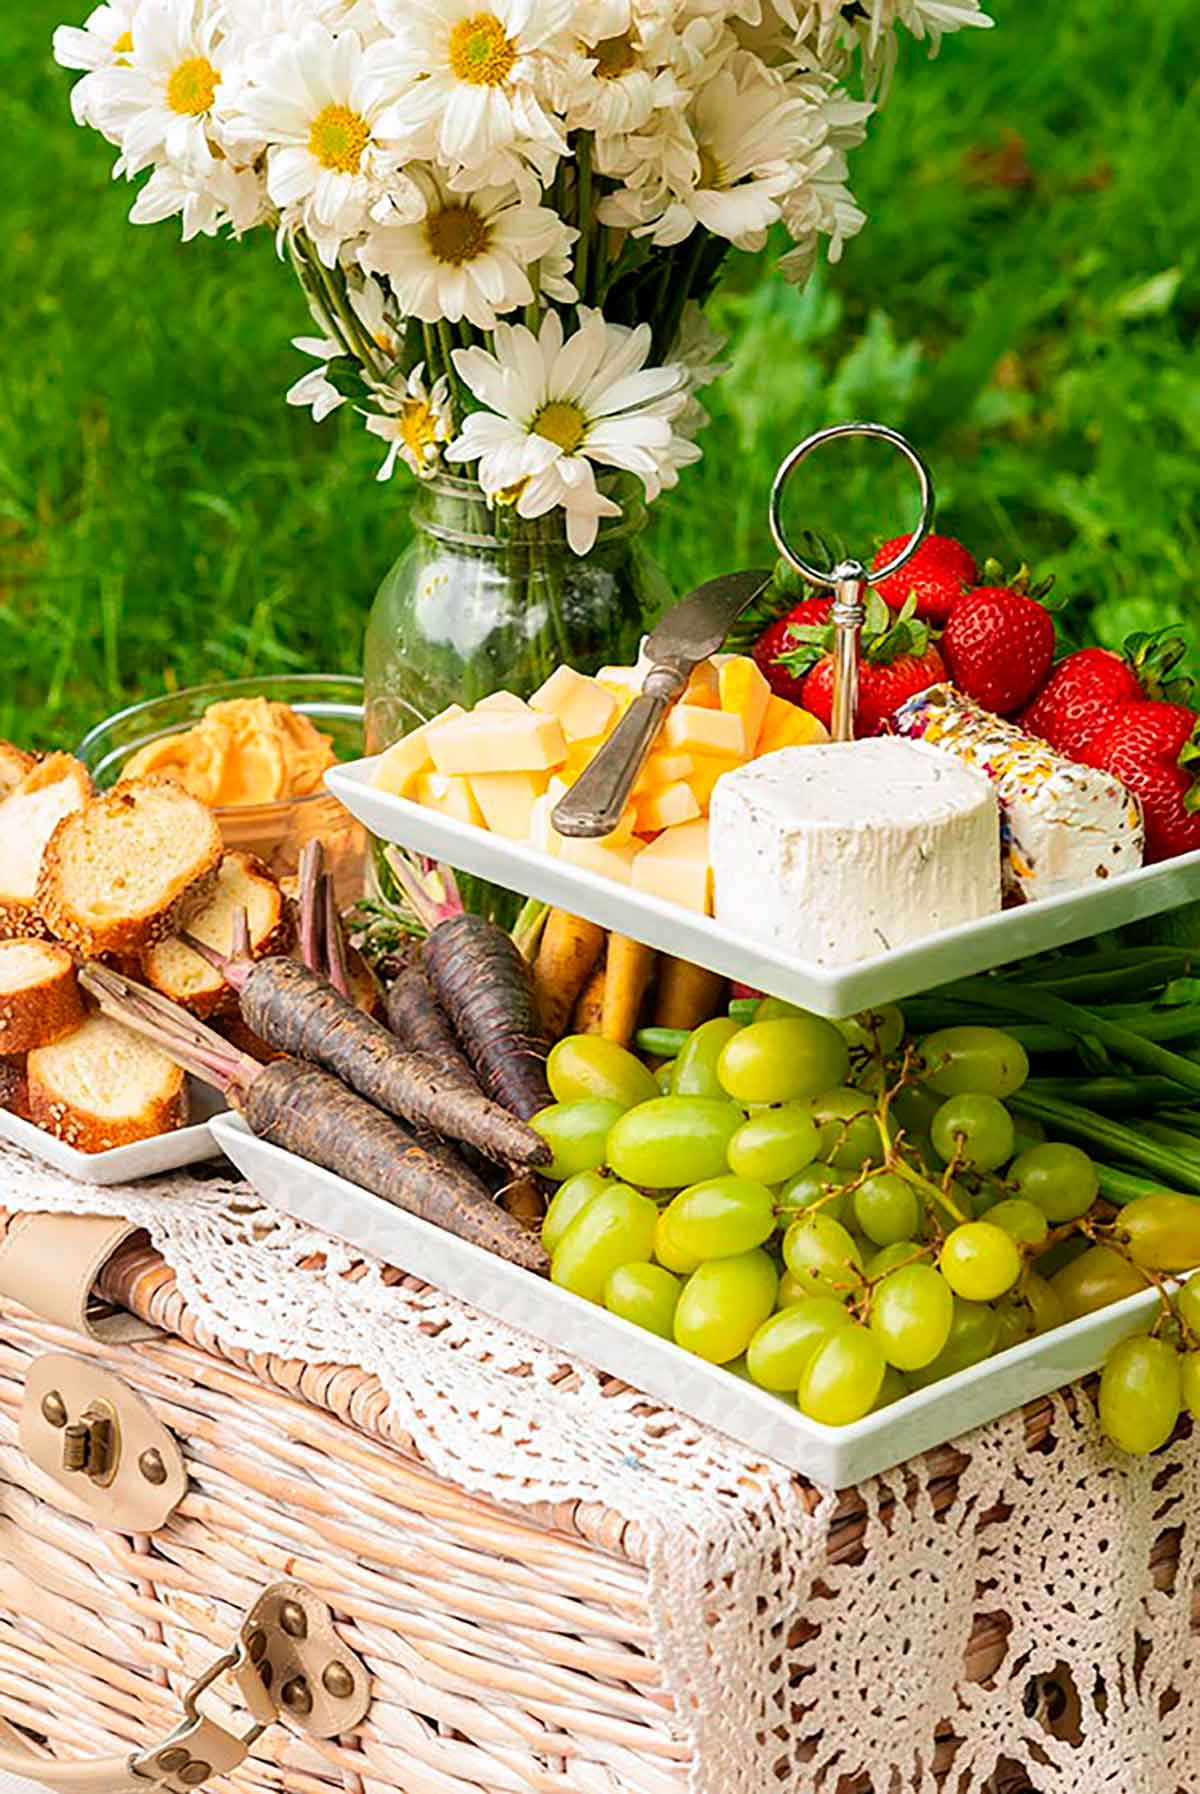 A 2 tiered plate with fruits, vegetables, cheese and bread, placed on a picnic basket, beside a jar of daisies on grass.